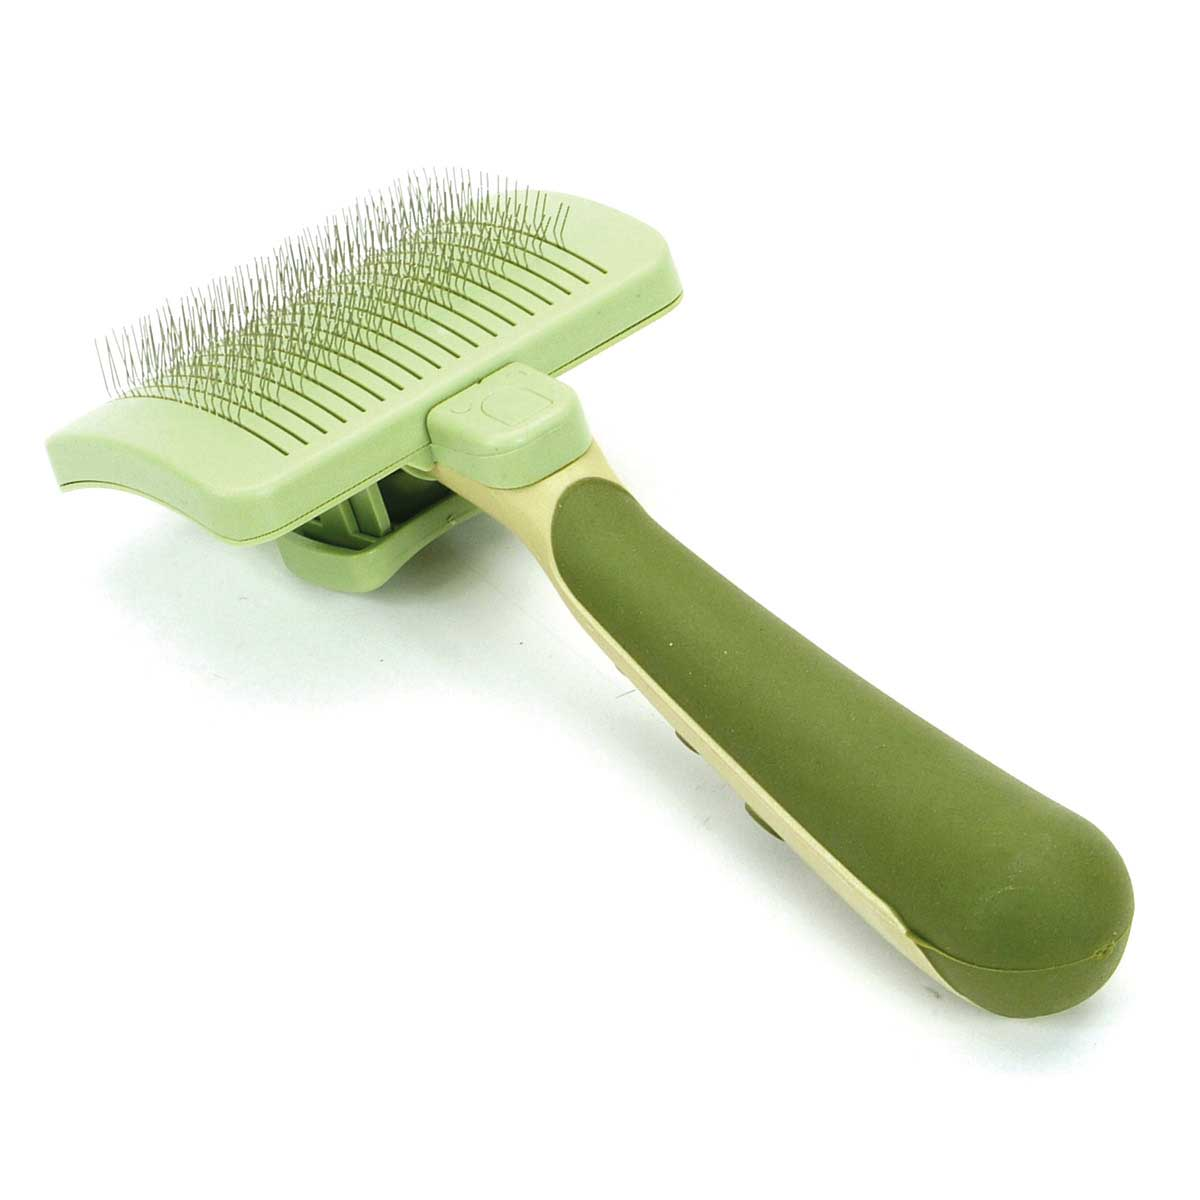 Medium Safari Self Cleaning Slicker Hairbrush for Pet Grooming